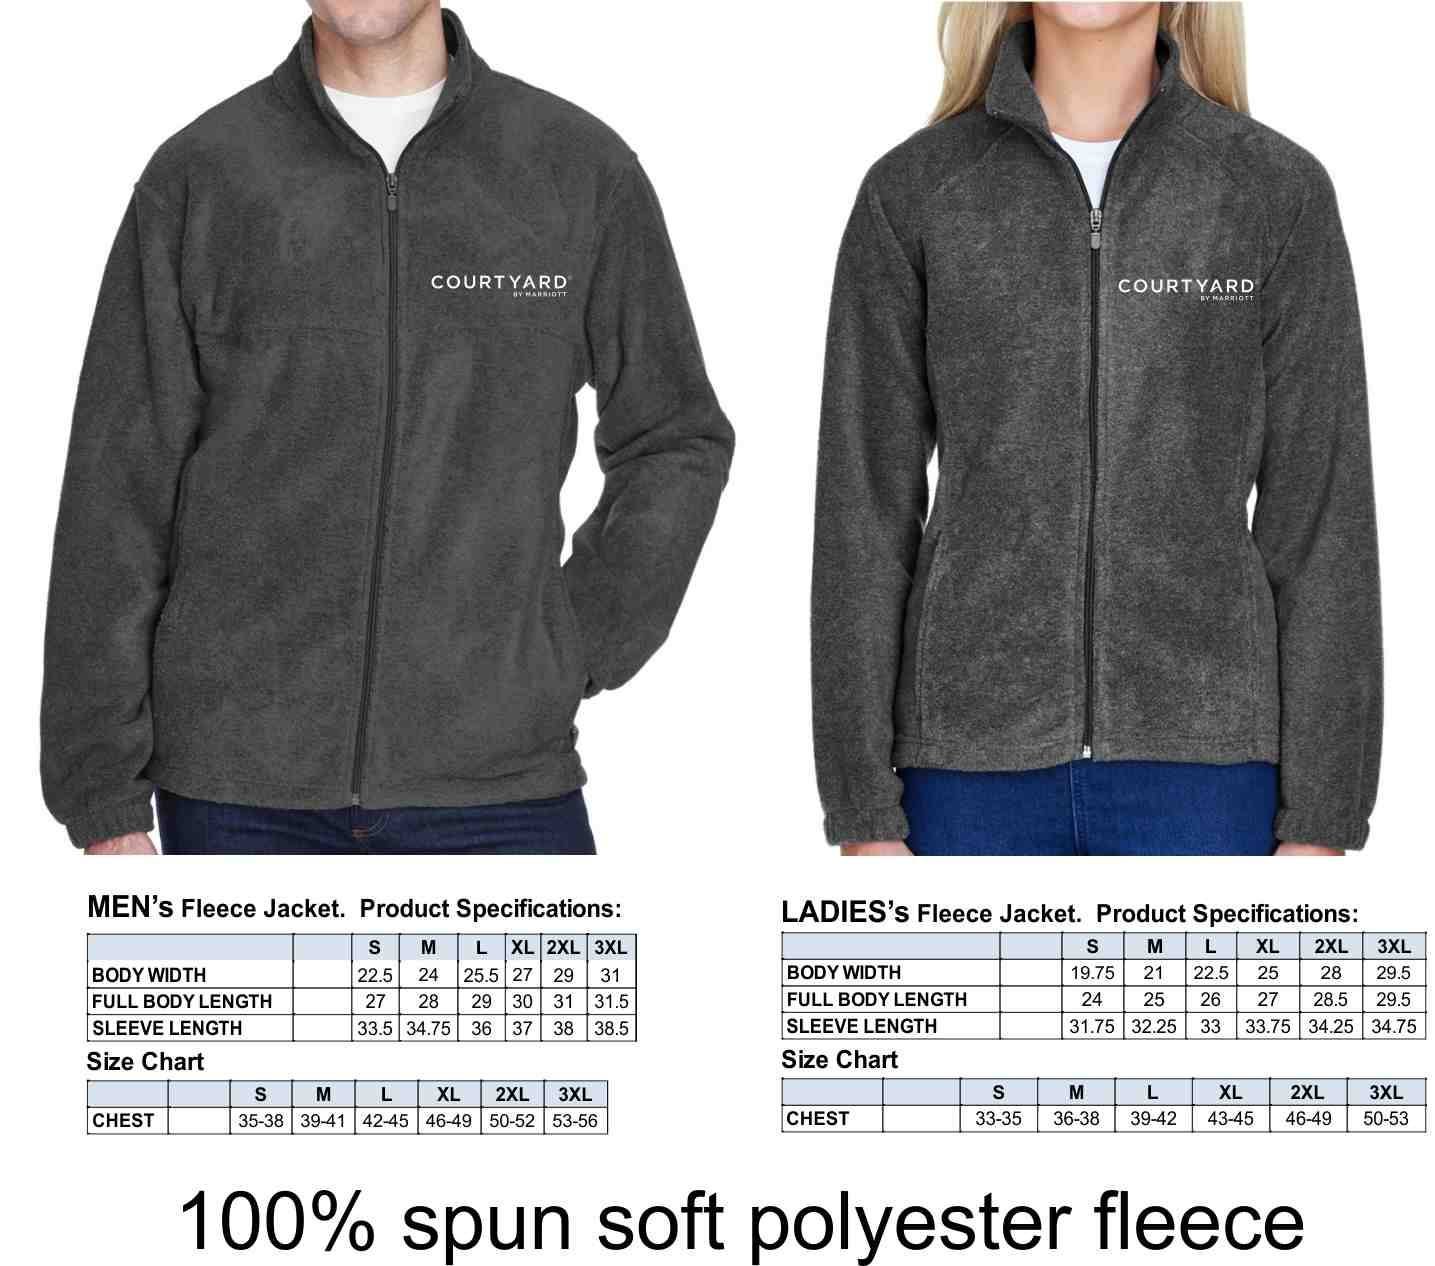 Fleece Jackets (Men's AND Ladies's) - Color: Charcoal - 100% Spun Soft Polyester Fleece - Silk-Screen Logo Left Chest - Highly Breathable - Front Zip Pockets - Elastic Cuffs